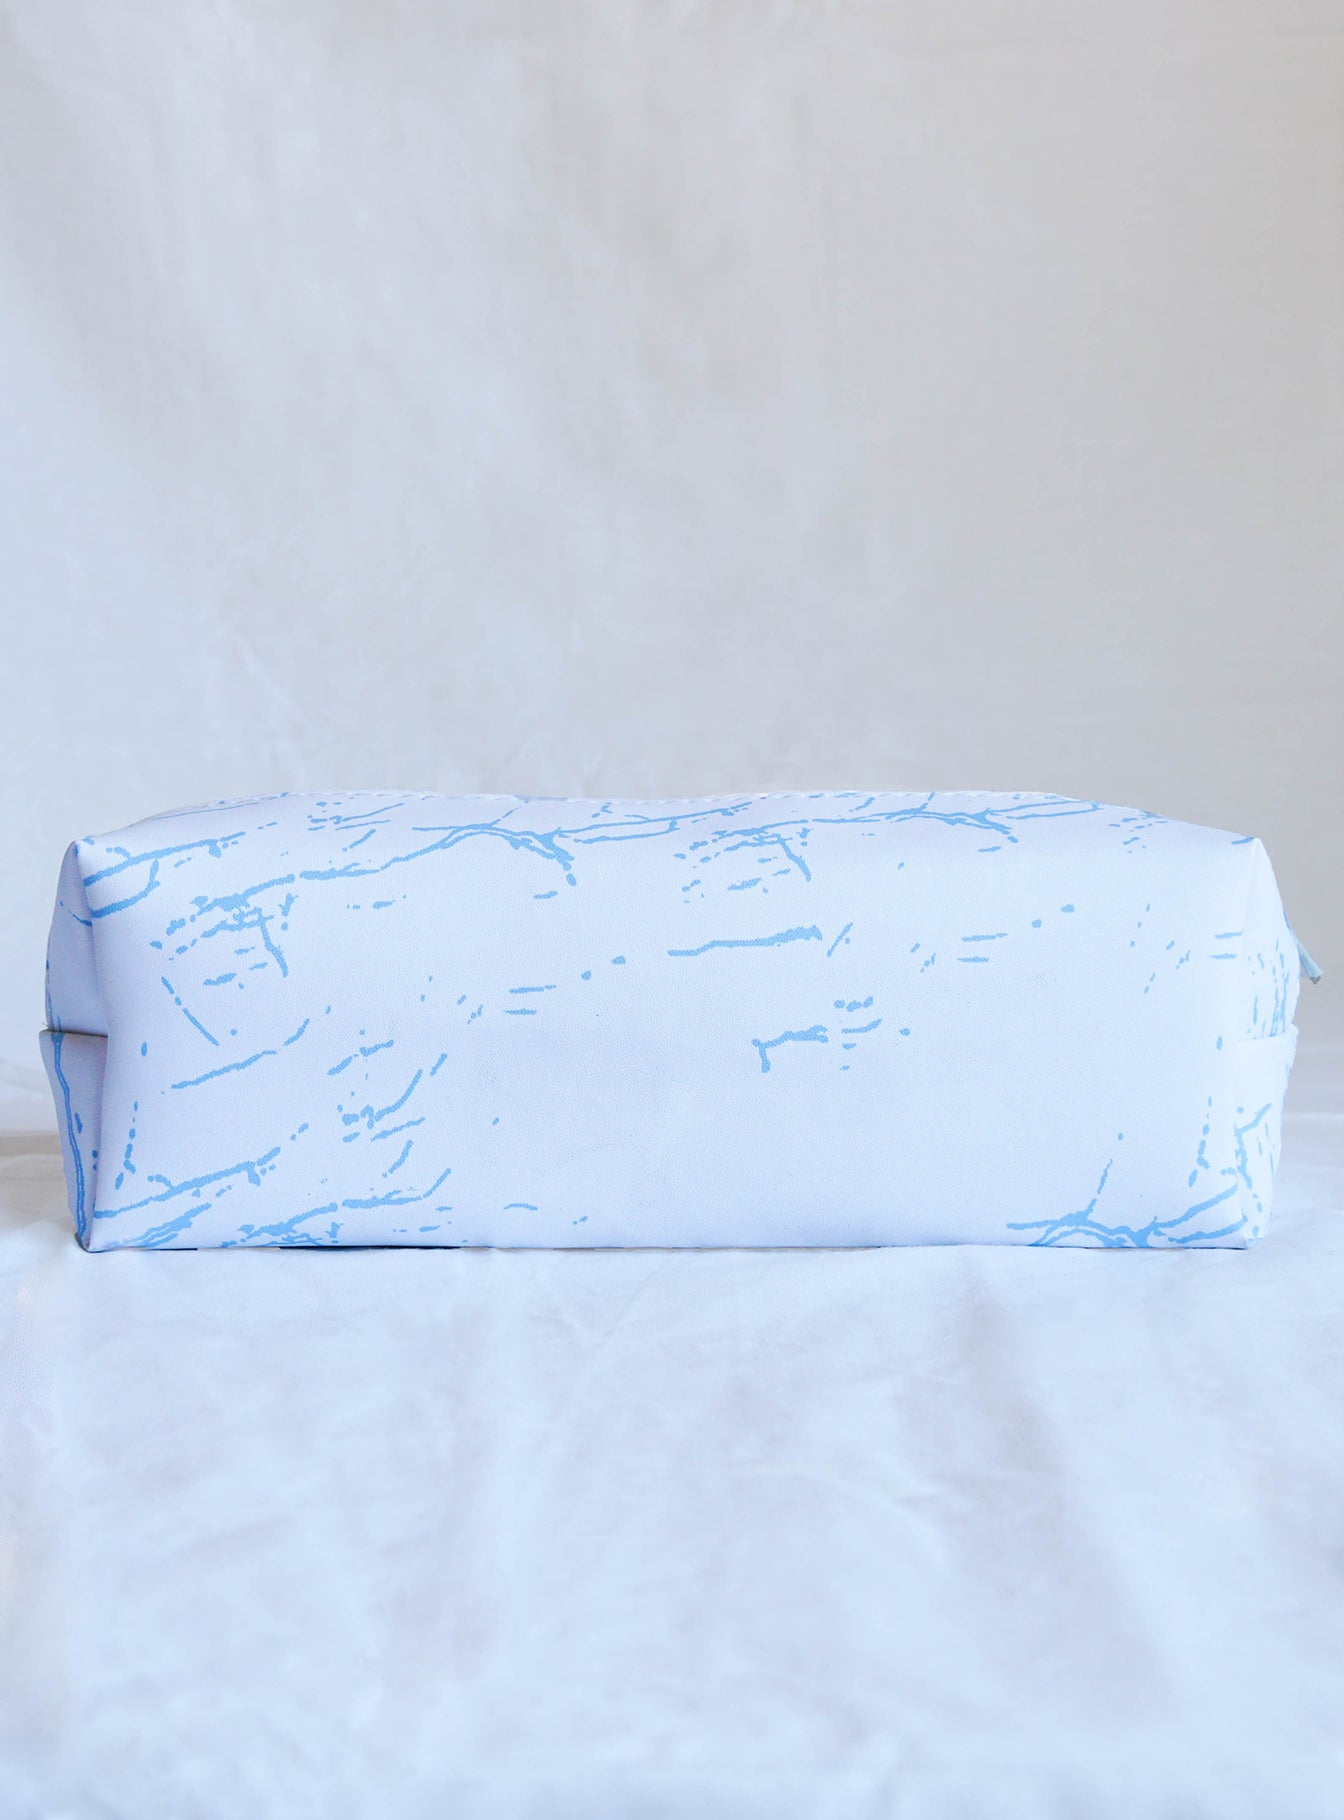 ICEYY PENCIL CASE